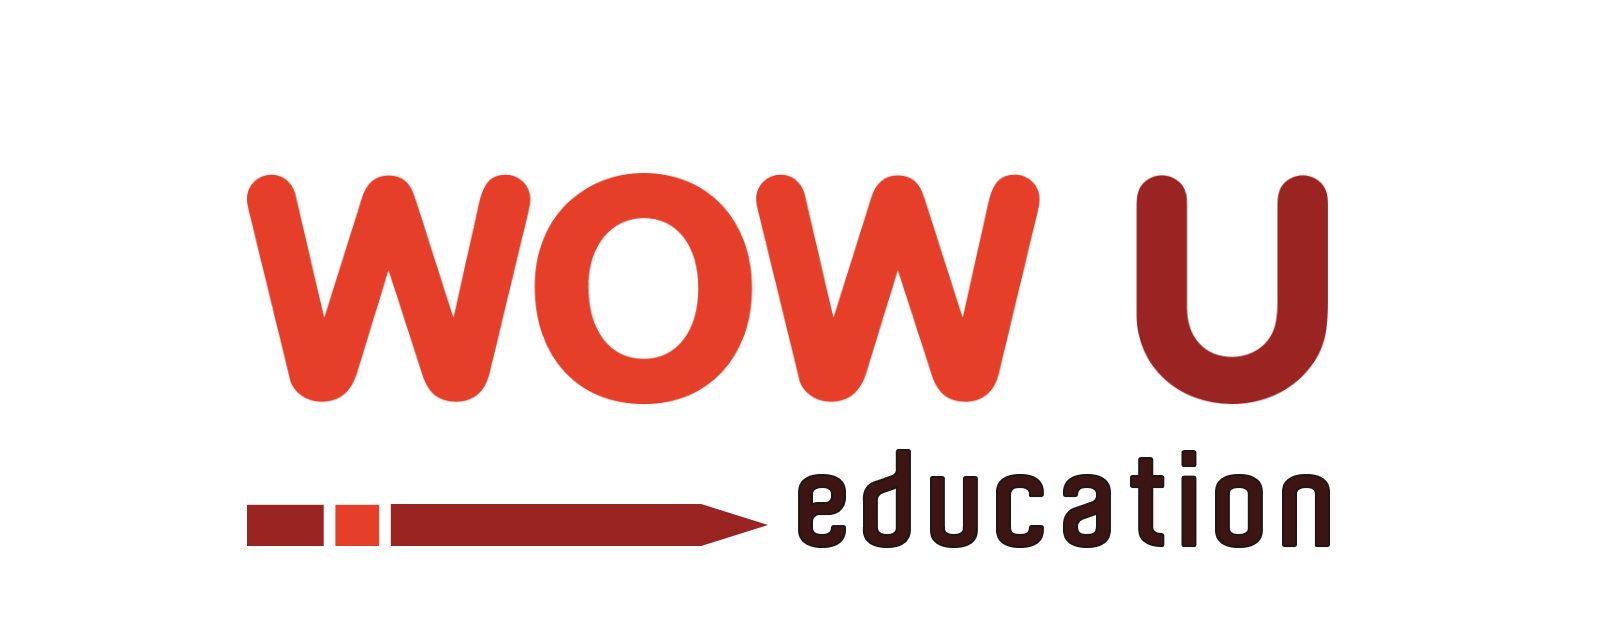 wowu-education-logo